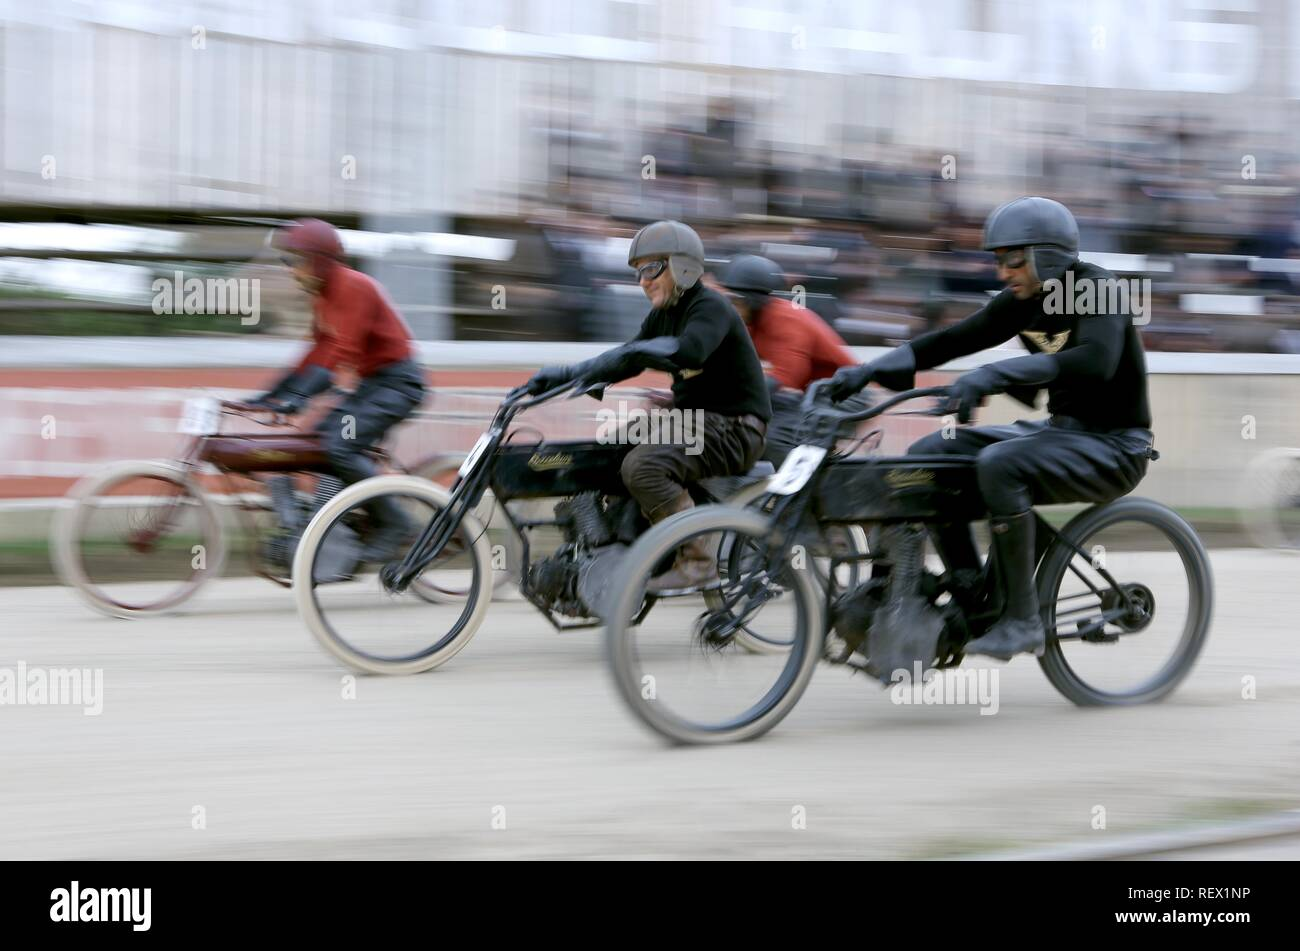 MOTORCYCLE RACE HARLEY AND THE DAVIDSONS (2016) - Stock Image